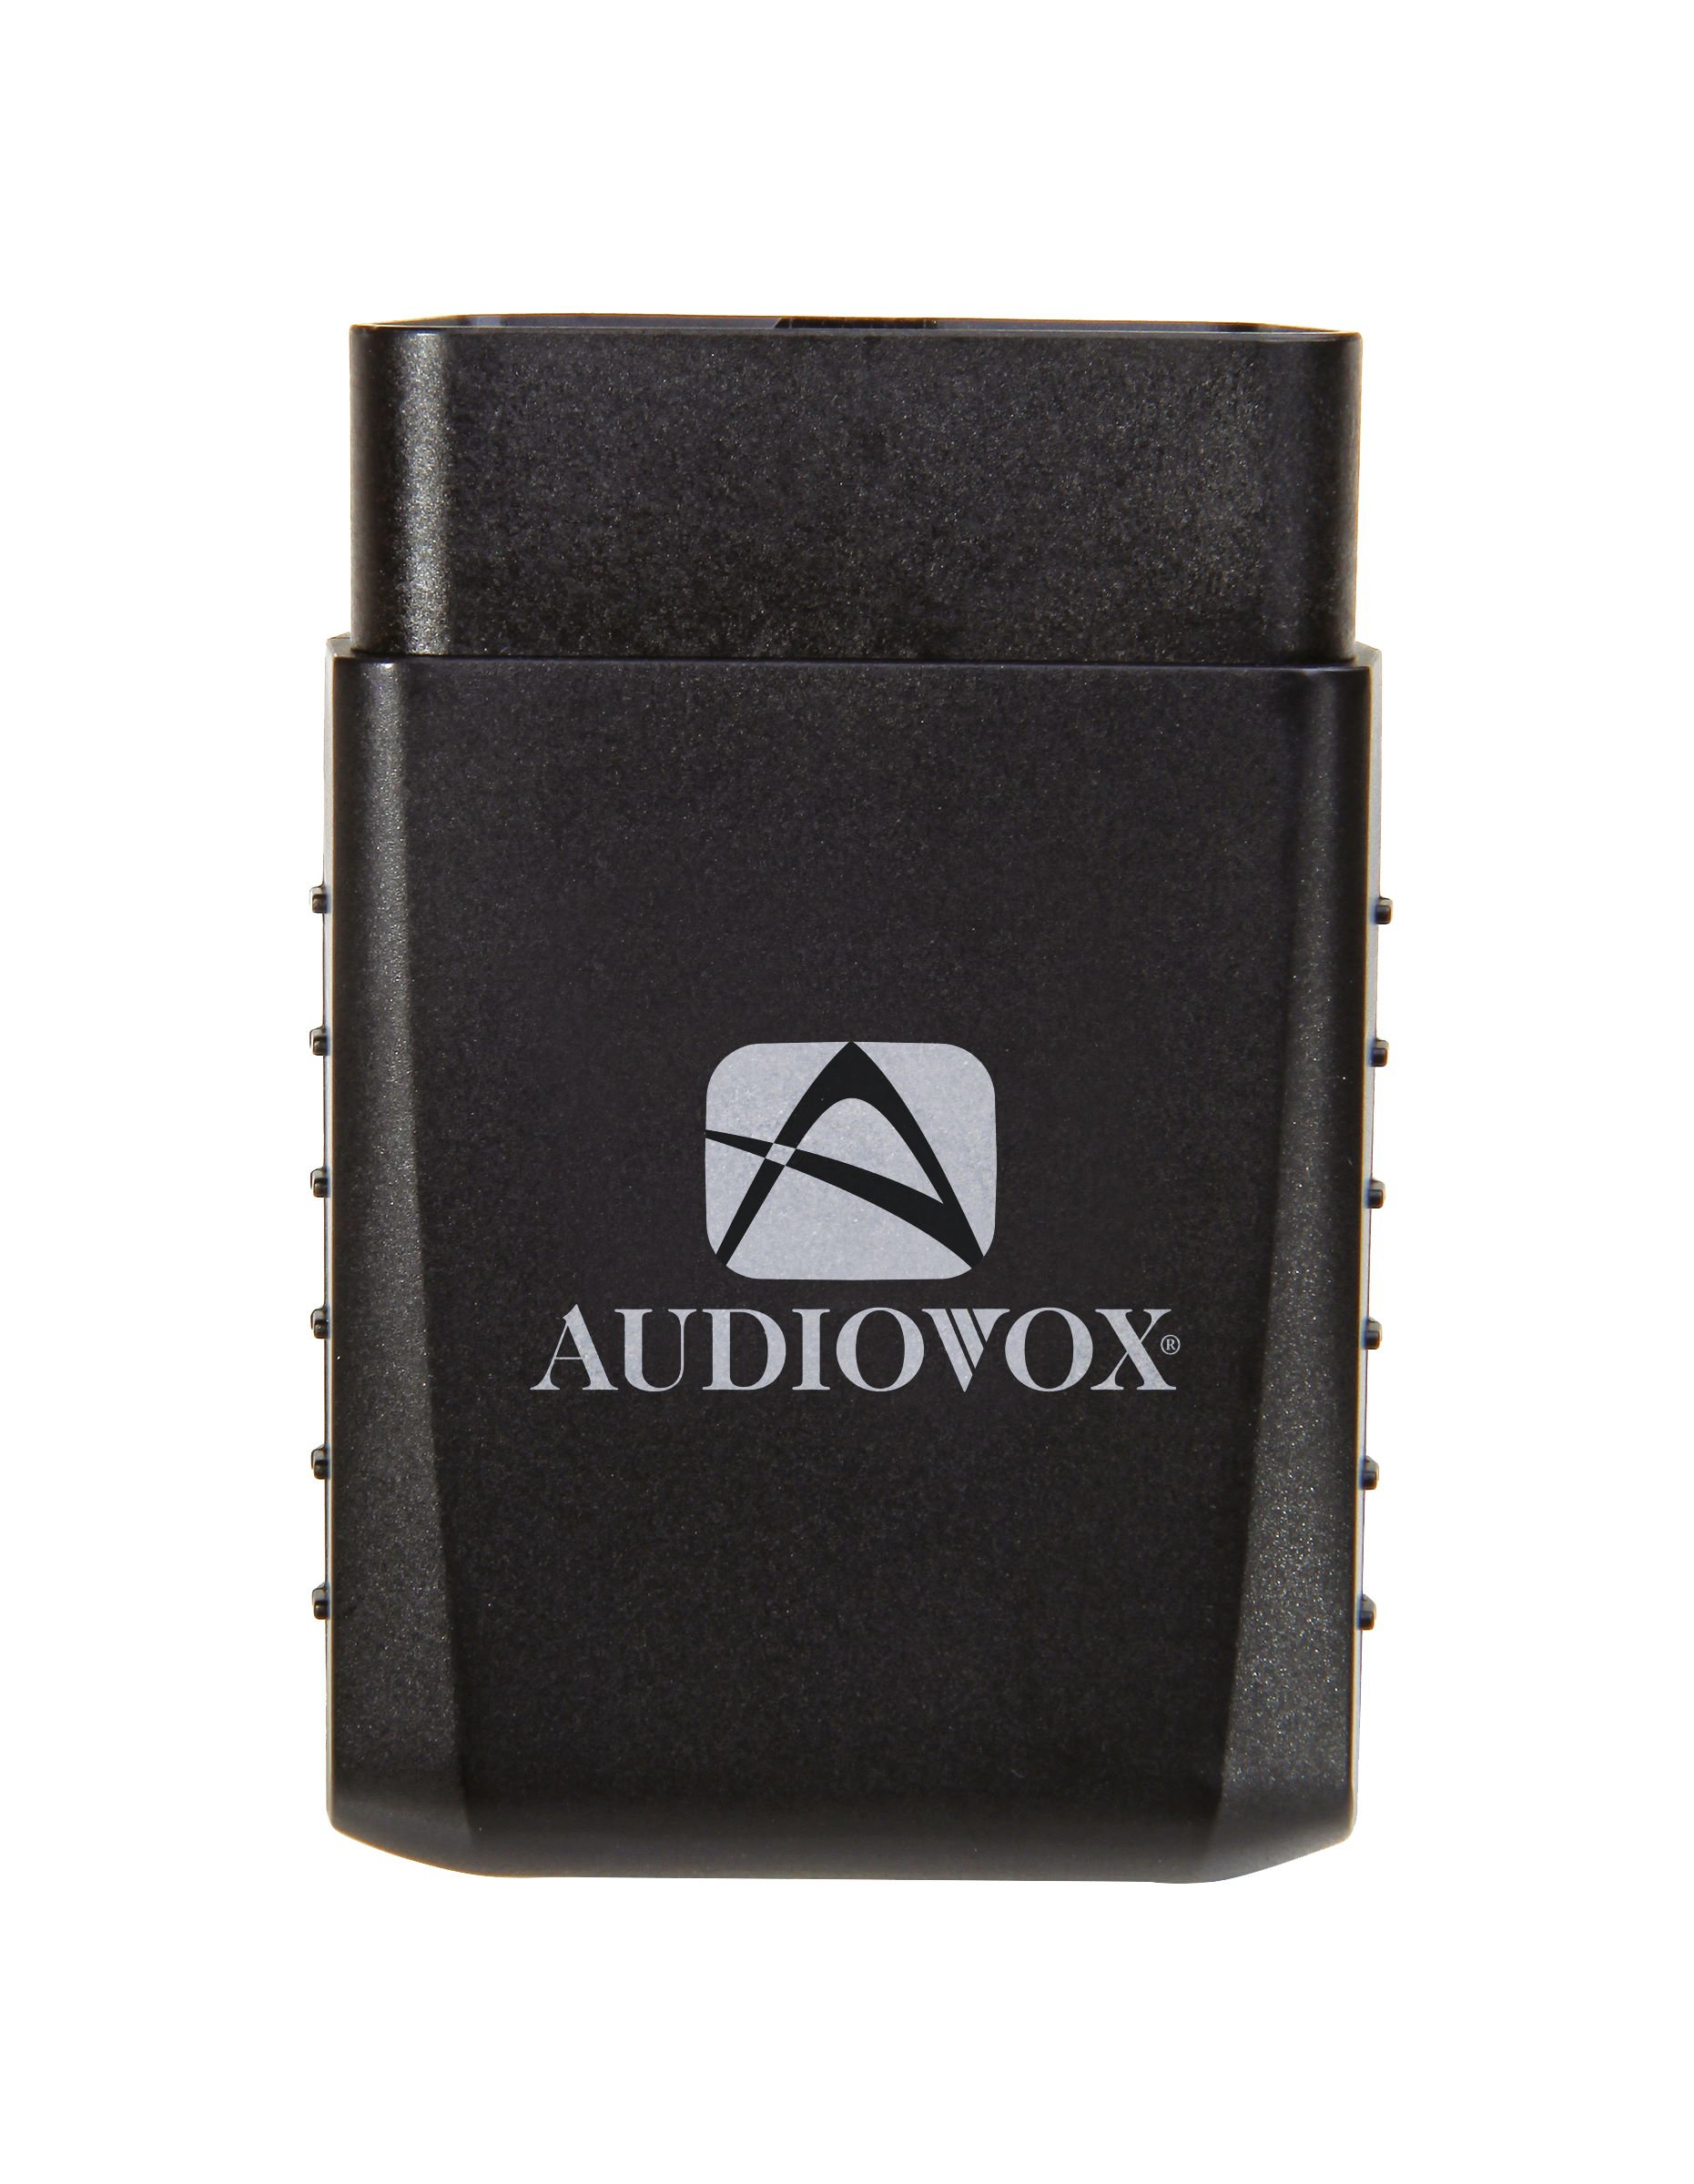 Audiovox Car Connection 2.0 - Vehicle Safety and GPS Tracker with Engine Diagnostics, Black (AT&T)